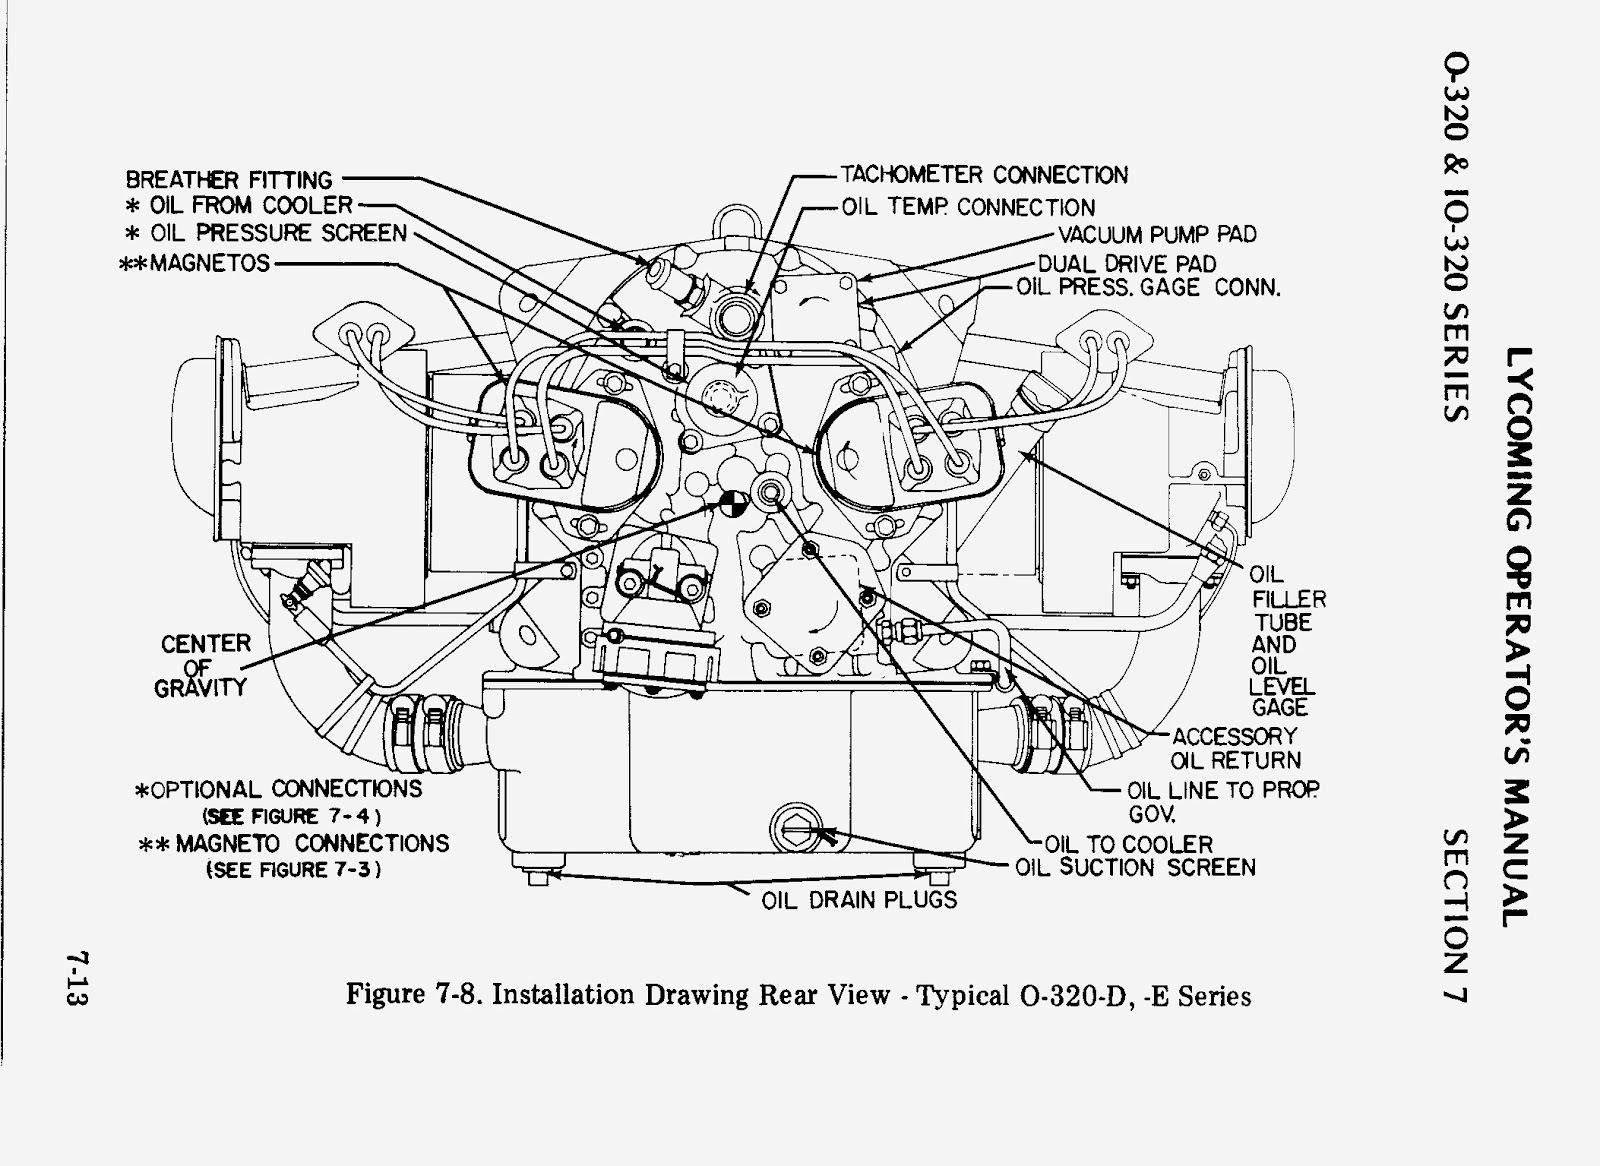 harley davidson oil system diagram rv - 4 builder: 2012 lycoming oil system diagram